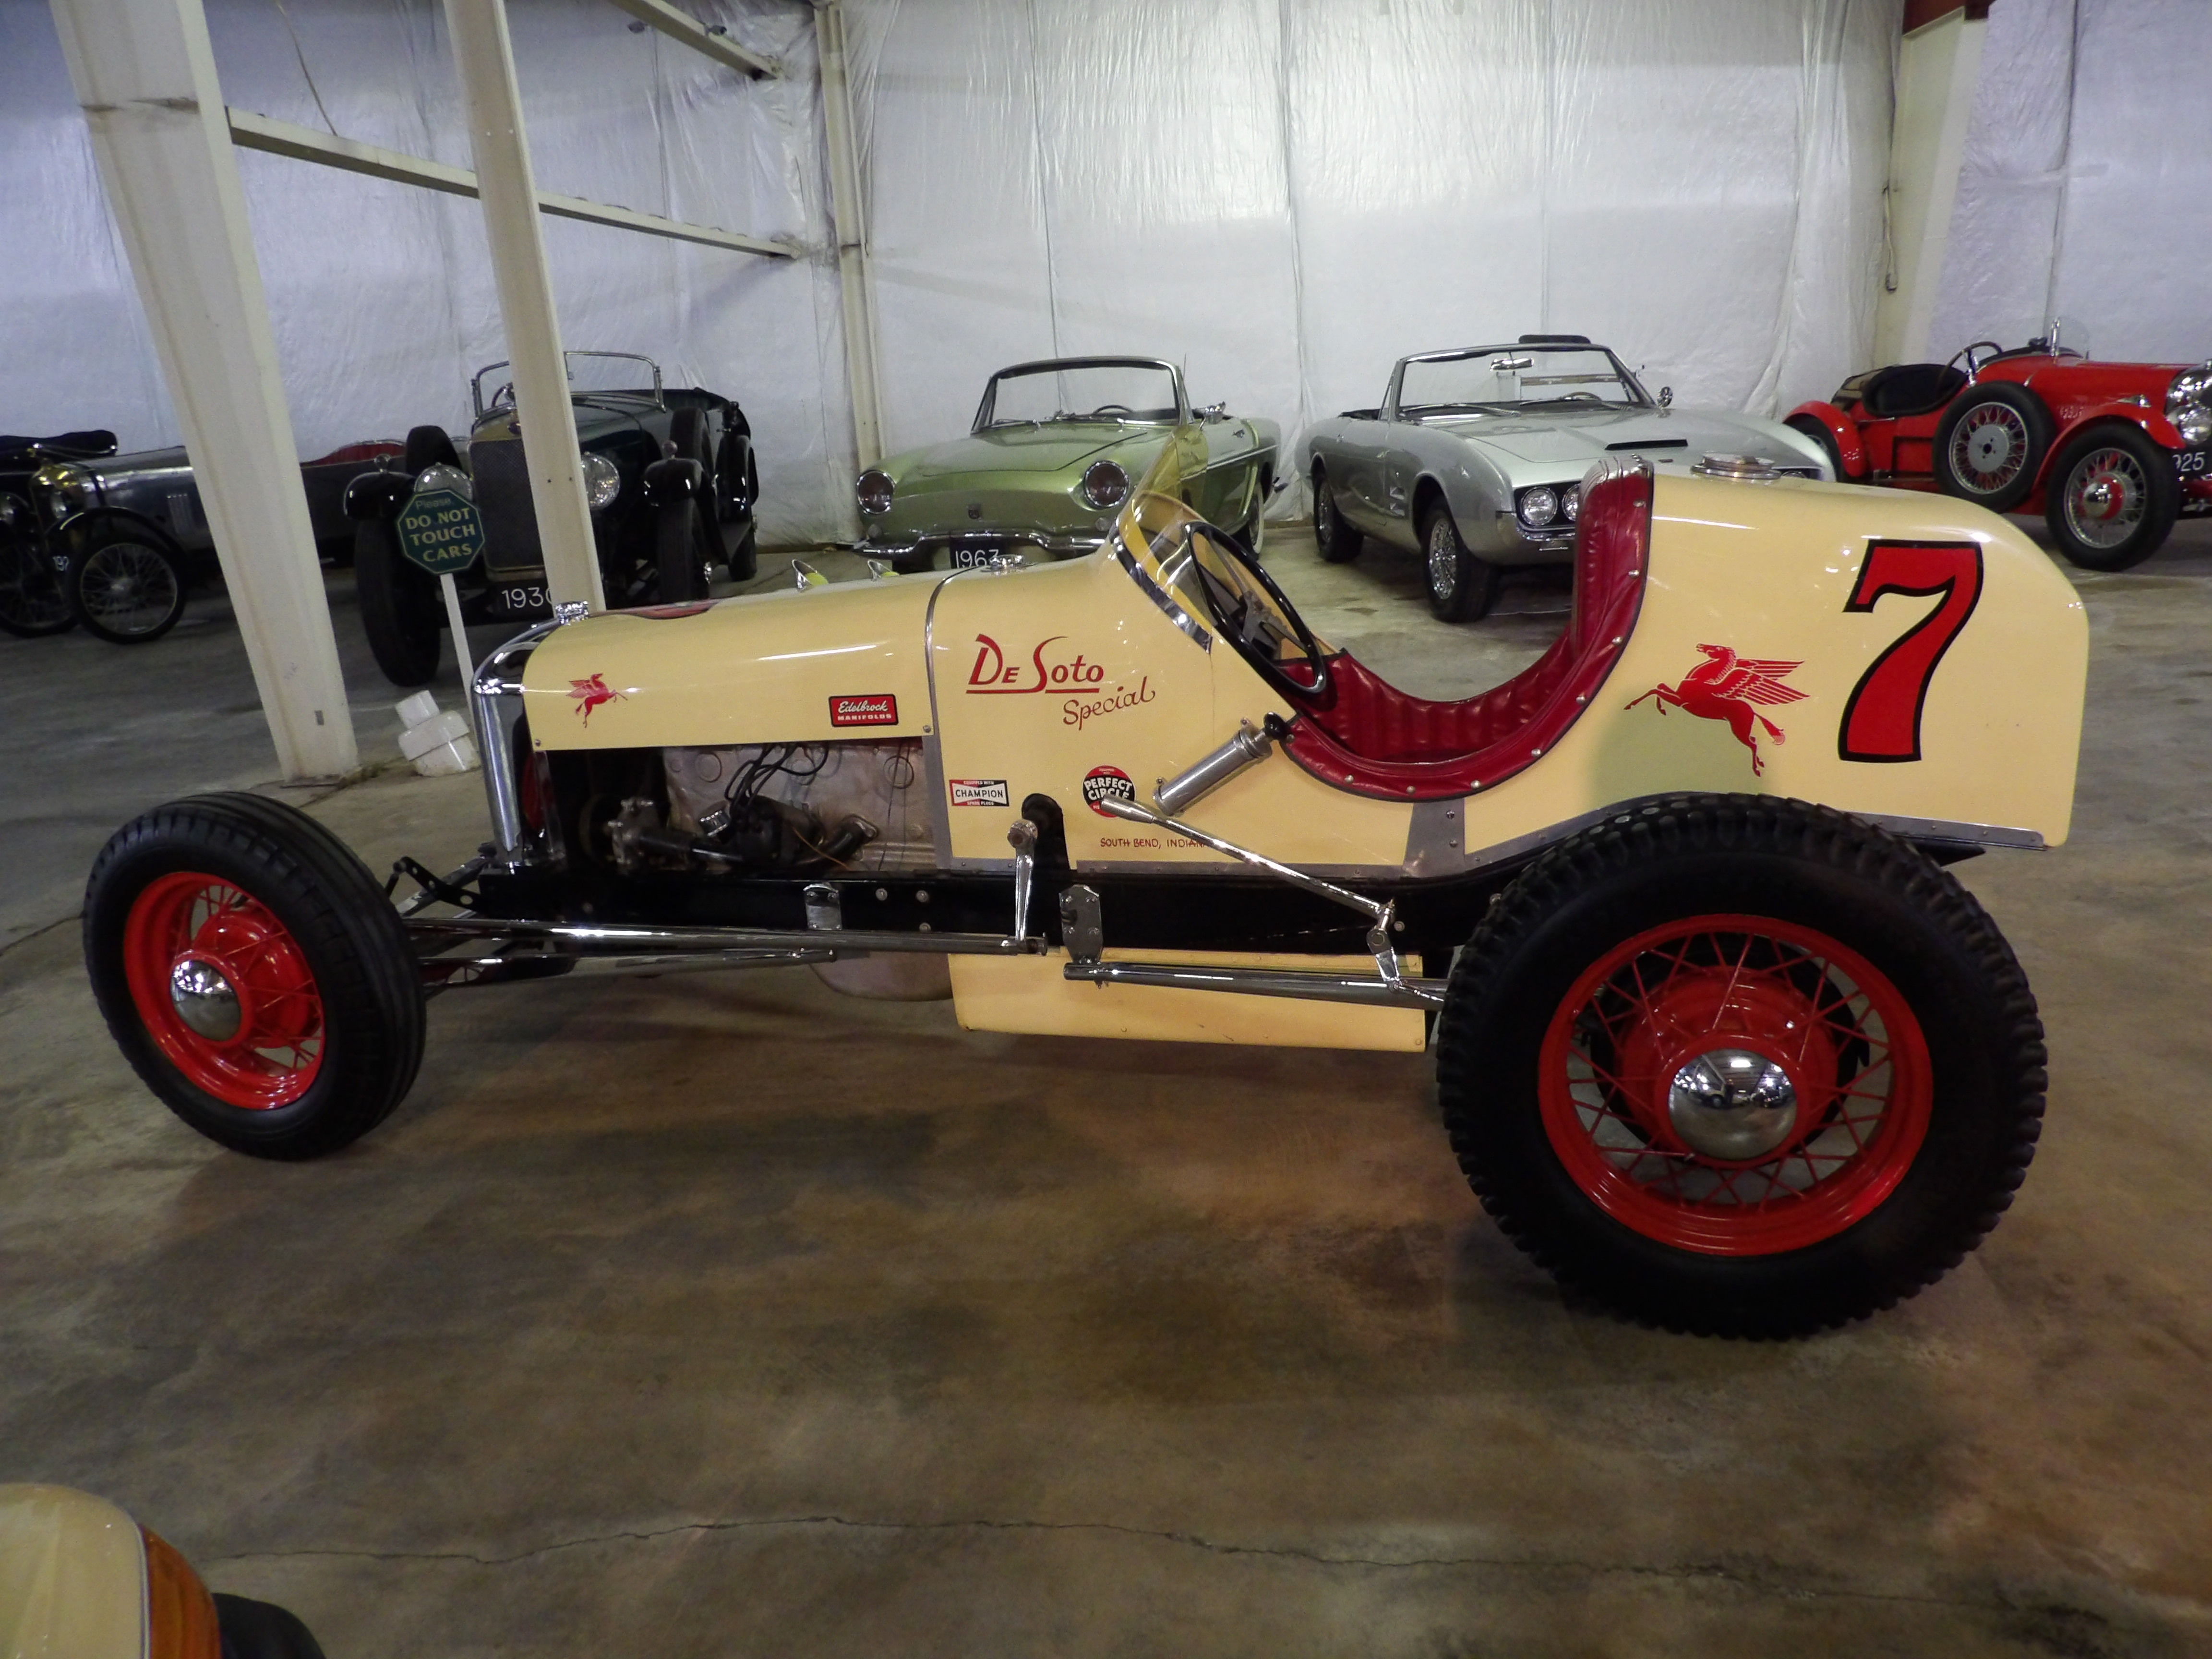 1928 DeSoto Indianapolis Style Race Car - Cars For Sale - Antique ...